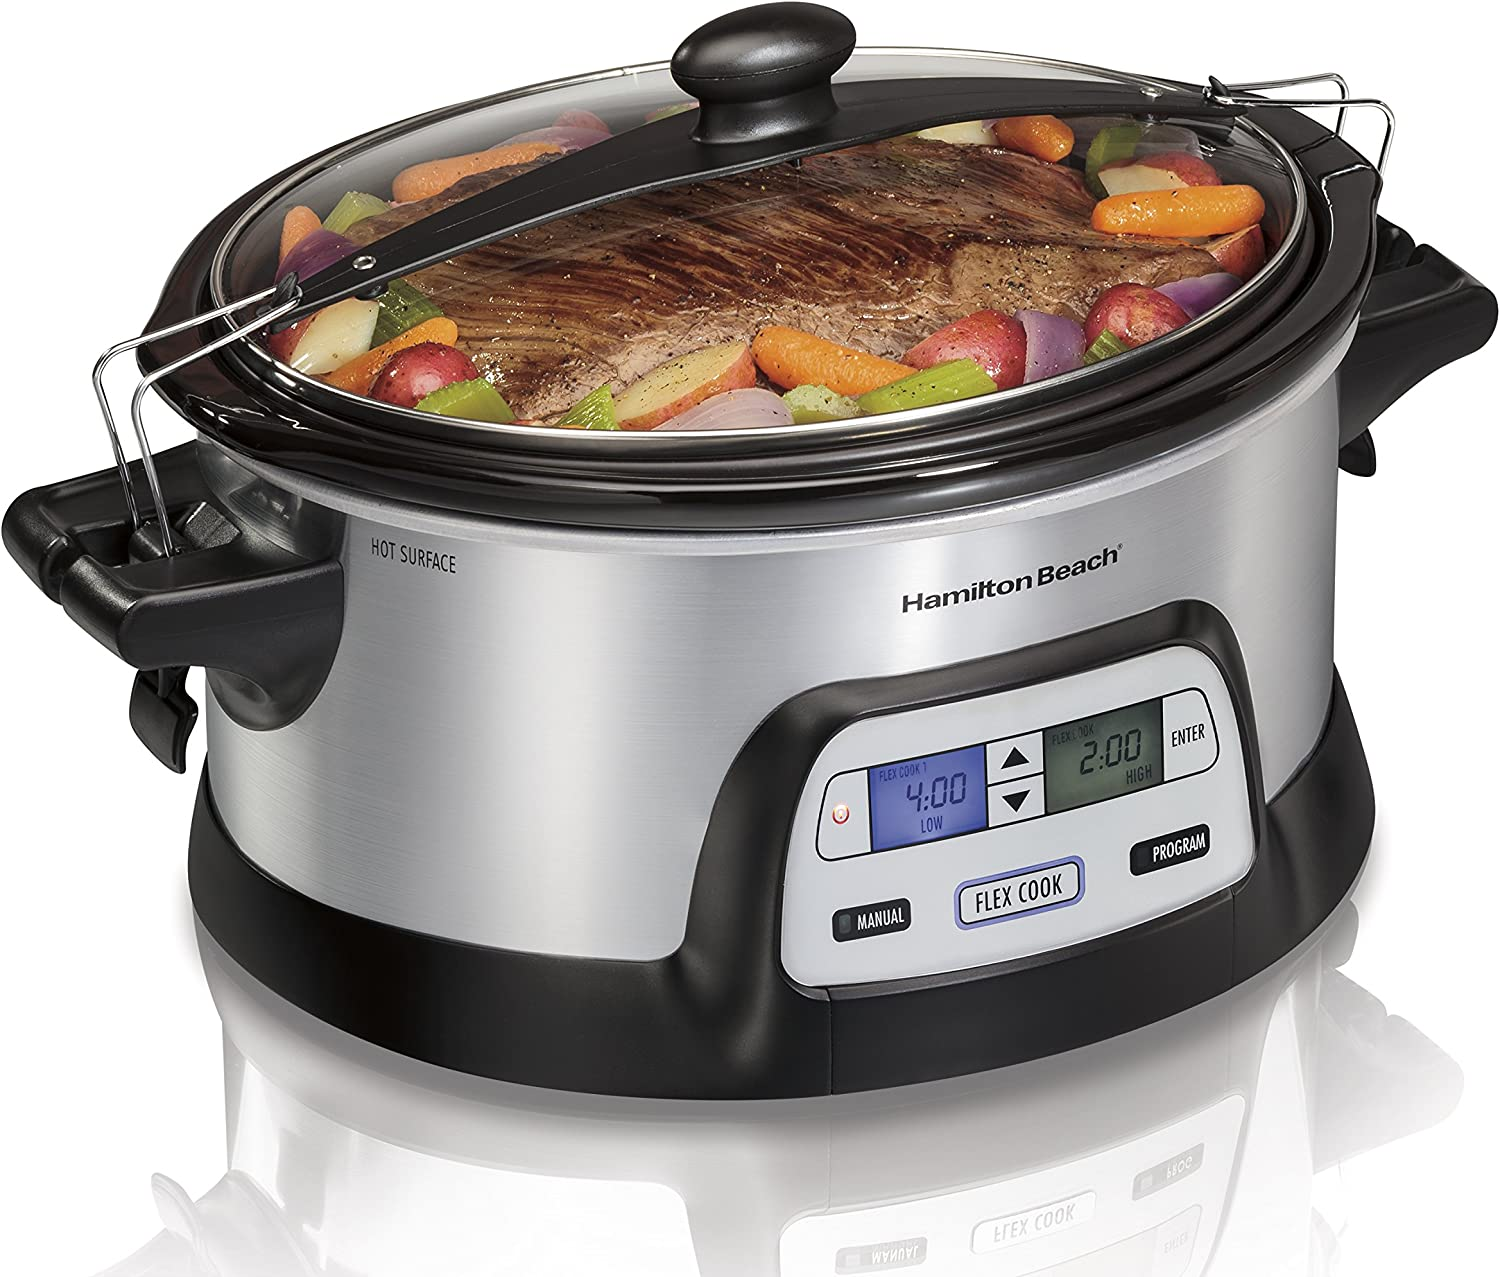 Hamilton Beach Stay or Go Portable 6-Quart Programmable Slow Cooker With FlexCook Dual Digital Timer for 2 Heat Settings, Lid Lock 33861